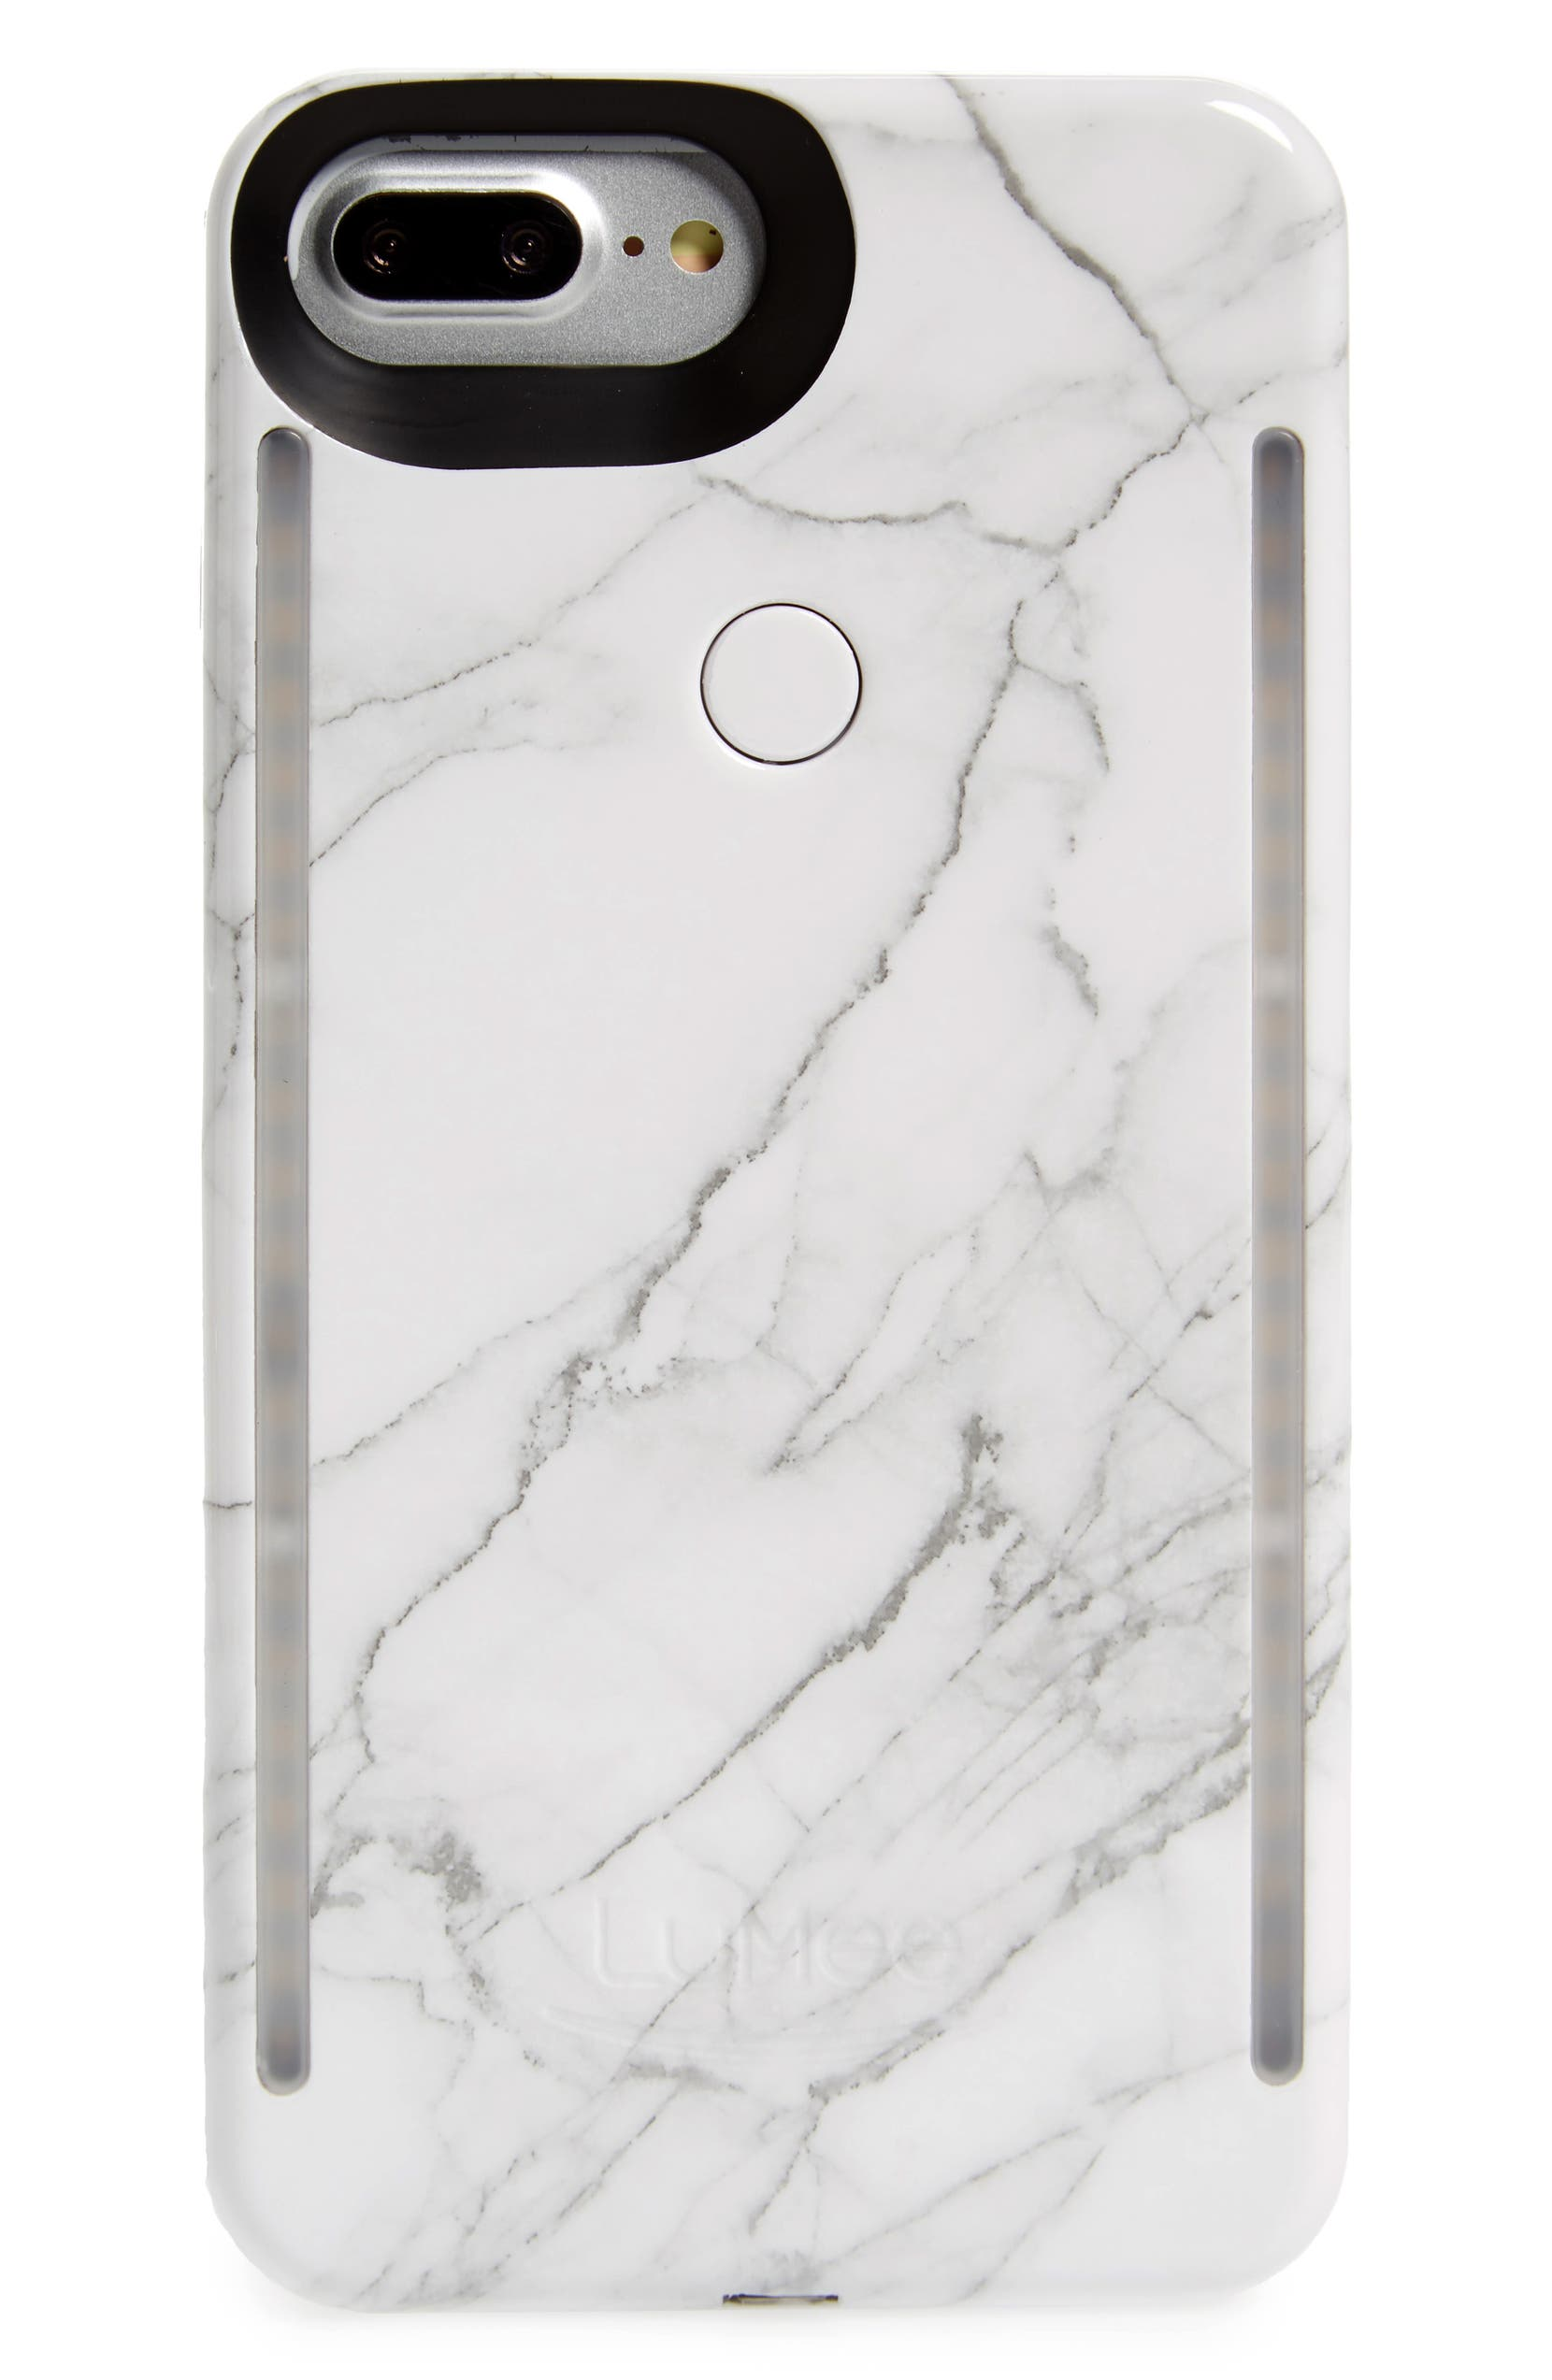 reputable site 16580 676ff Duo Lighted iPhone 6/7/8 & 6/7/8 Plus Case